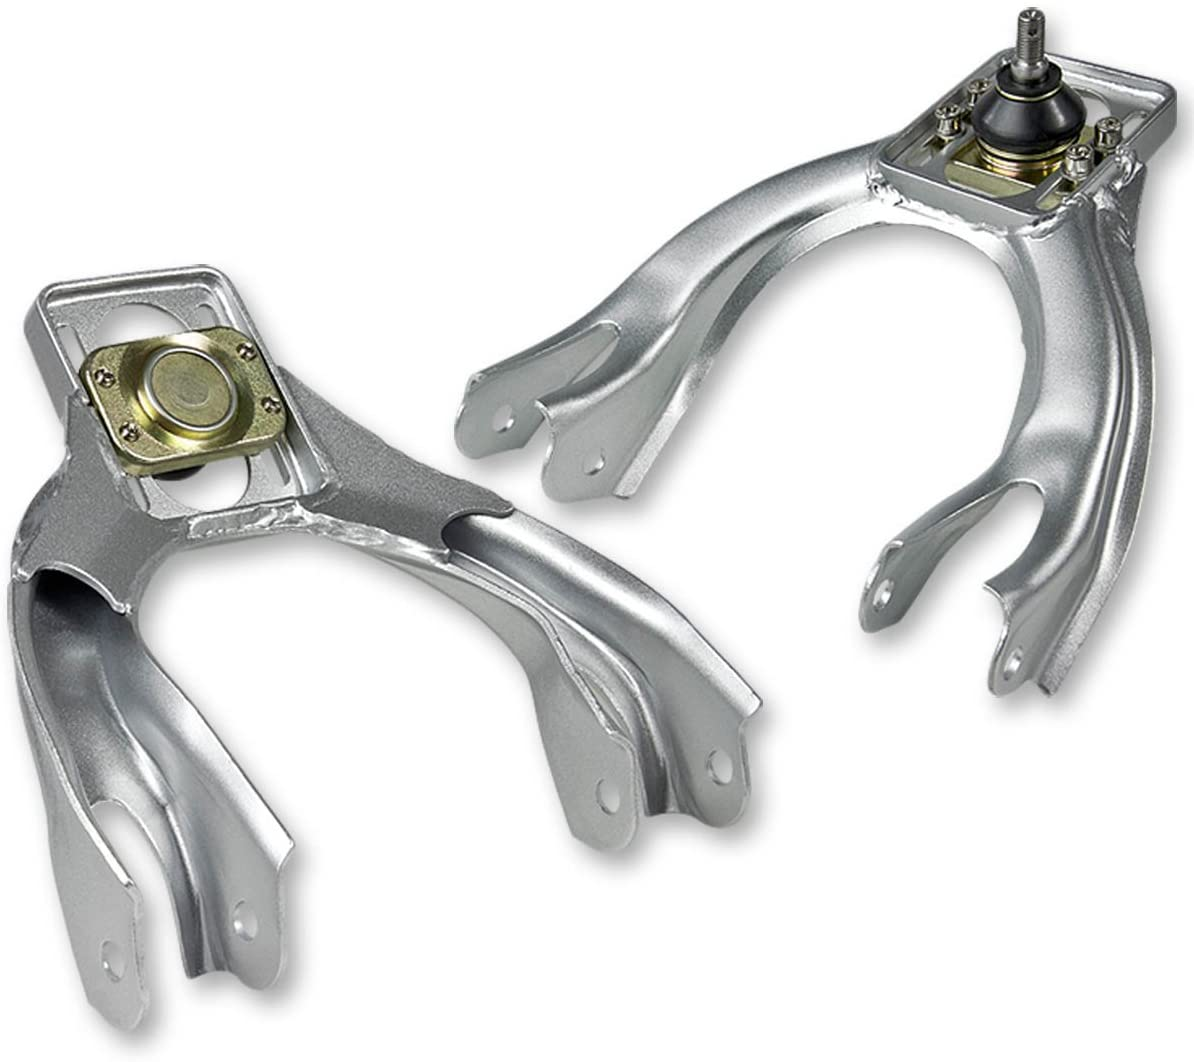 Replacement for 92-95 Honda Civic Performance Stainless Steel Adjustable Front Upper Camber Kit (Silver) - EG EH EJ